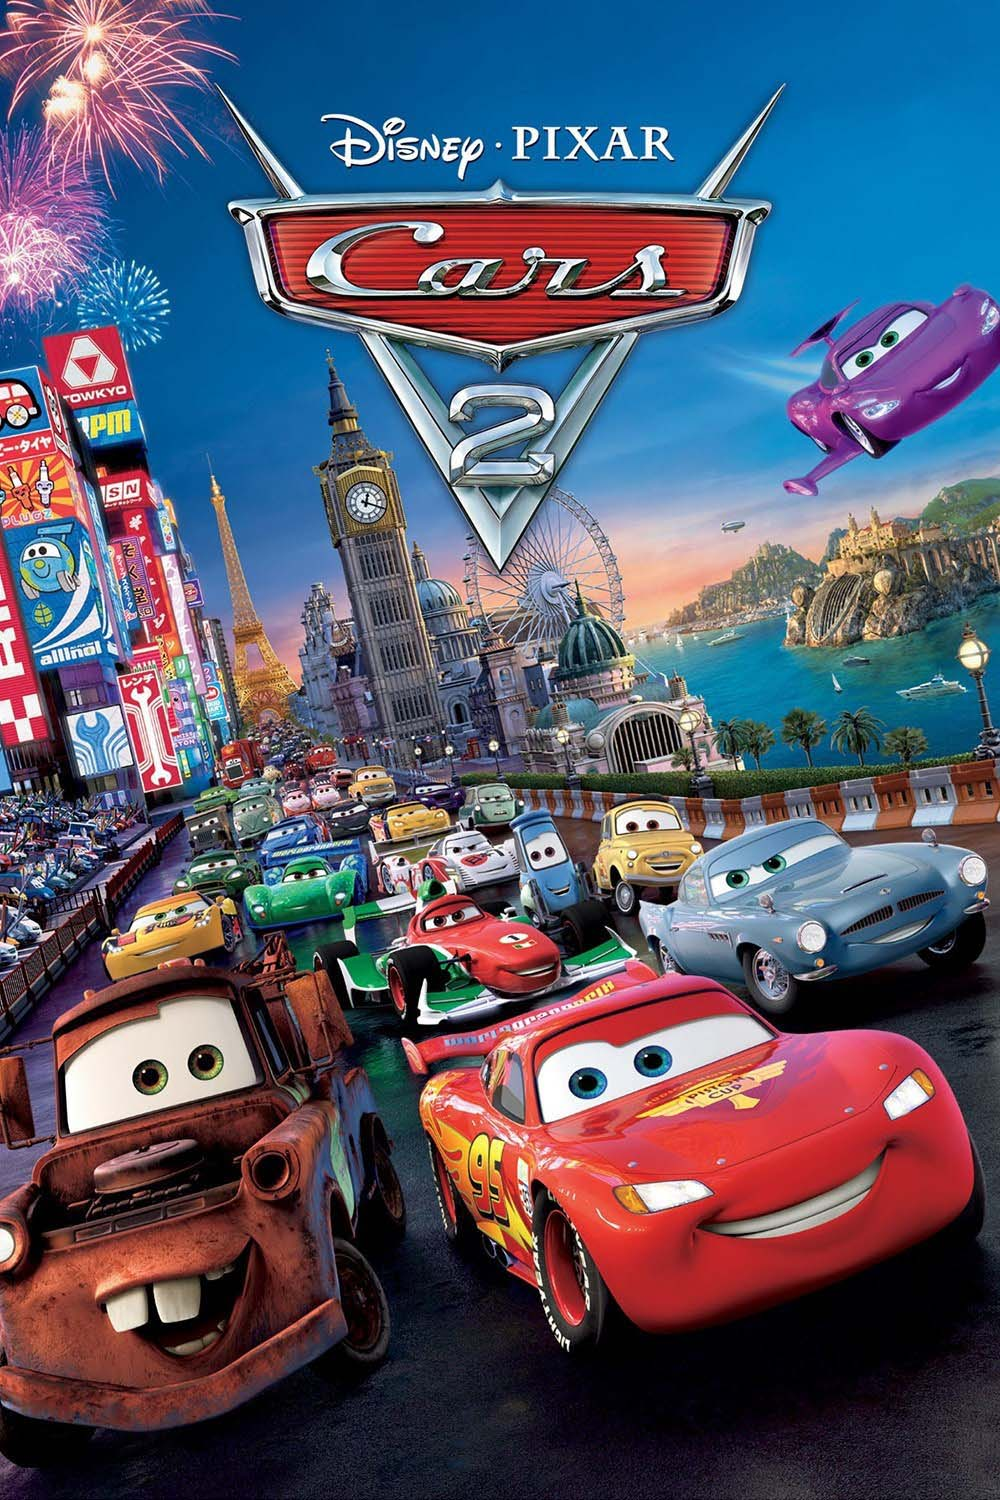 Cars 2 Full Movie Free Online